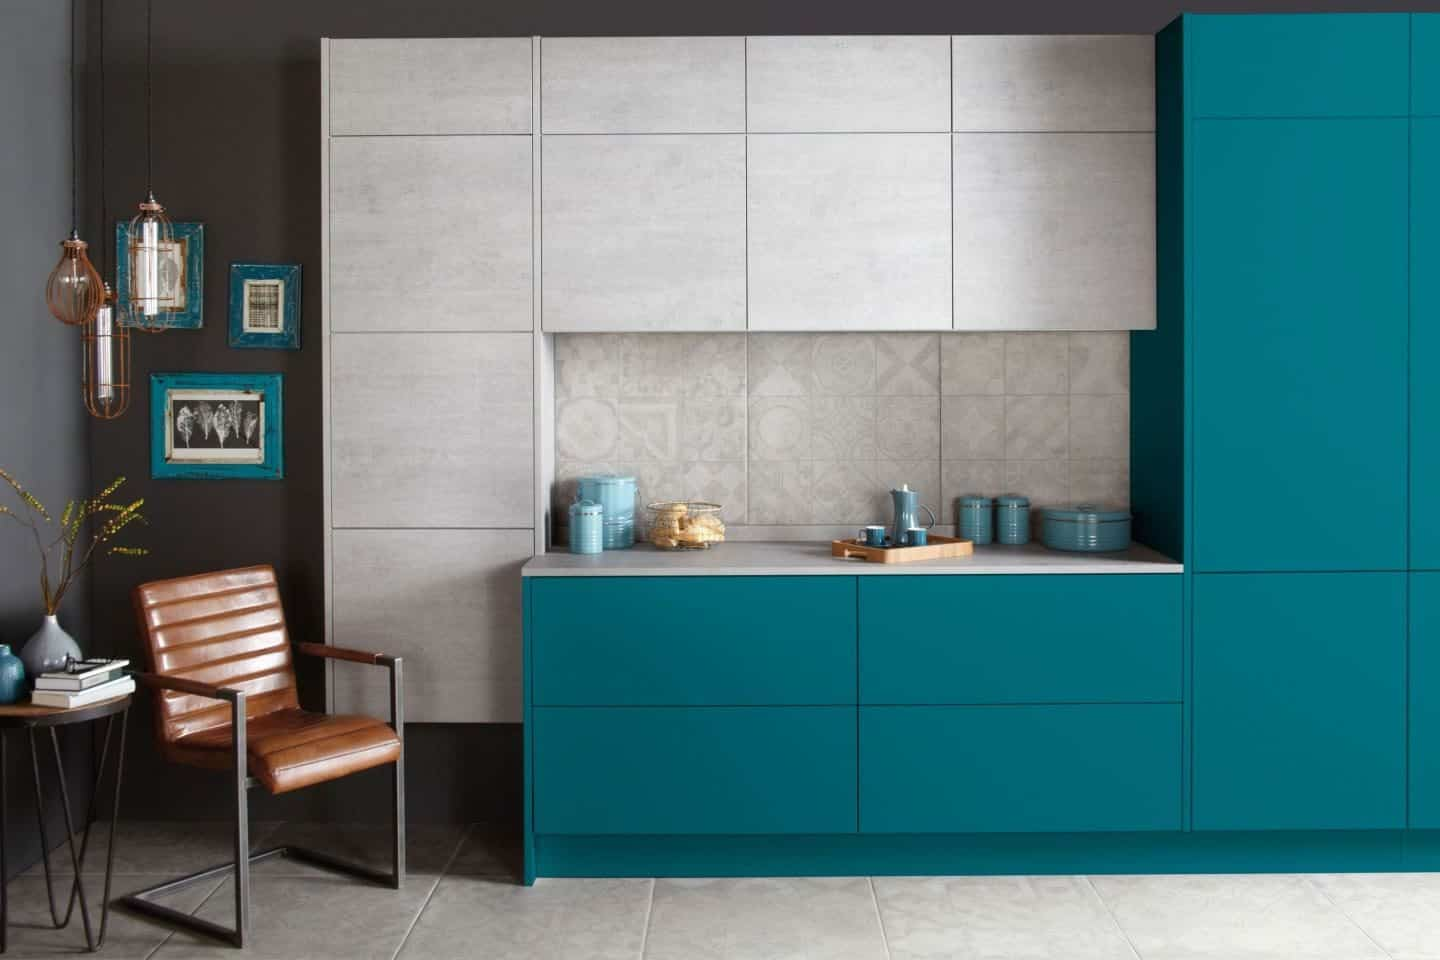 Burbidge Otto in Bespoke Painted Teal and Concrete From £7,500